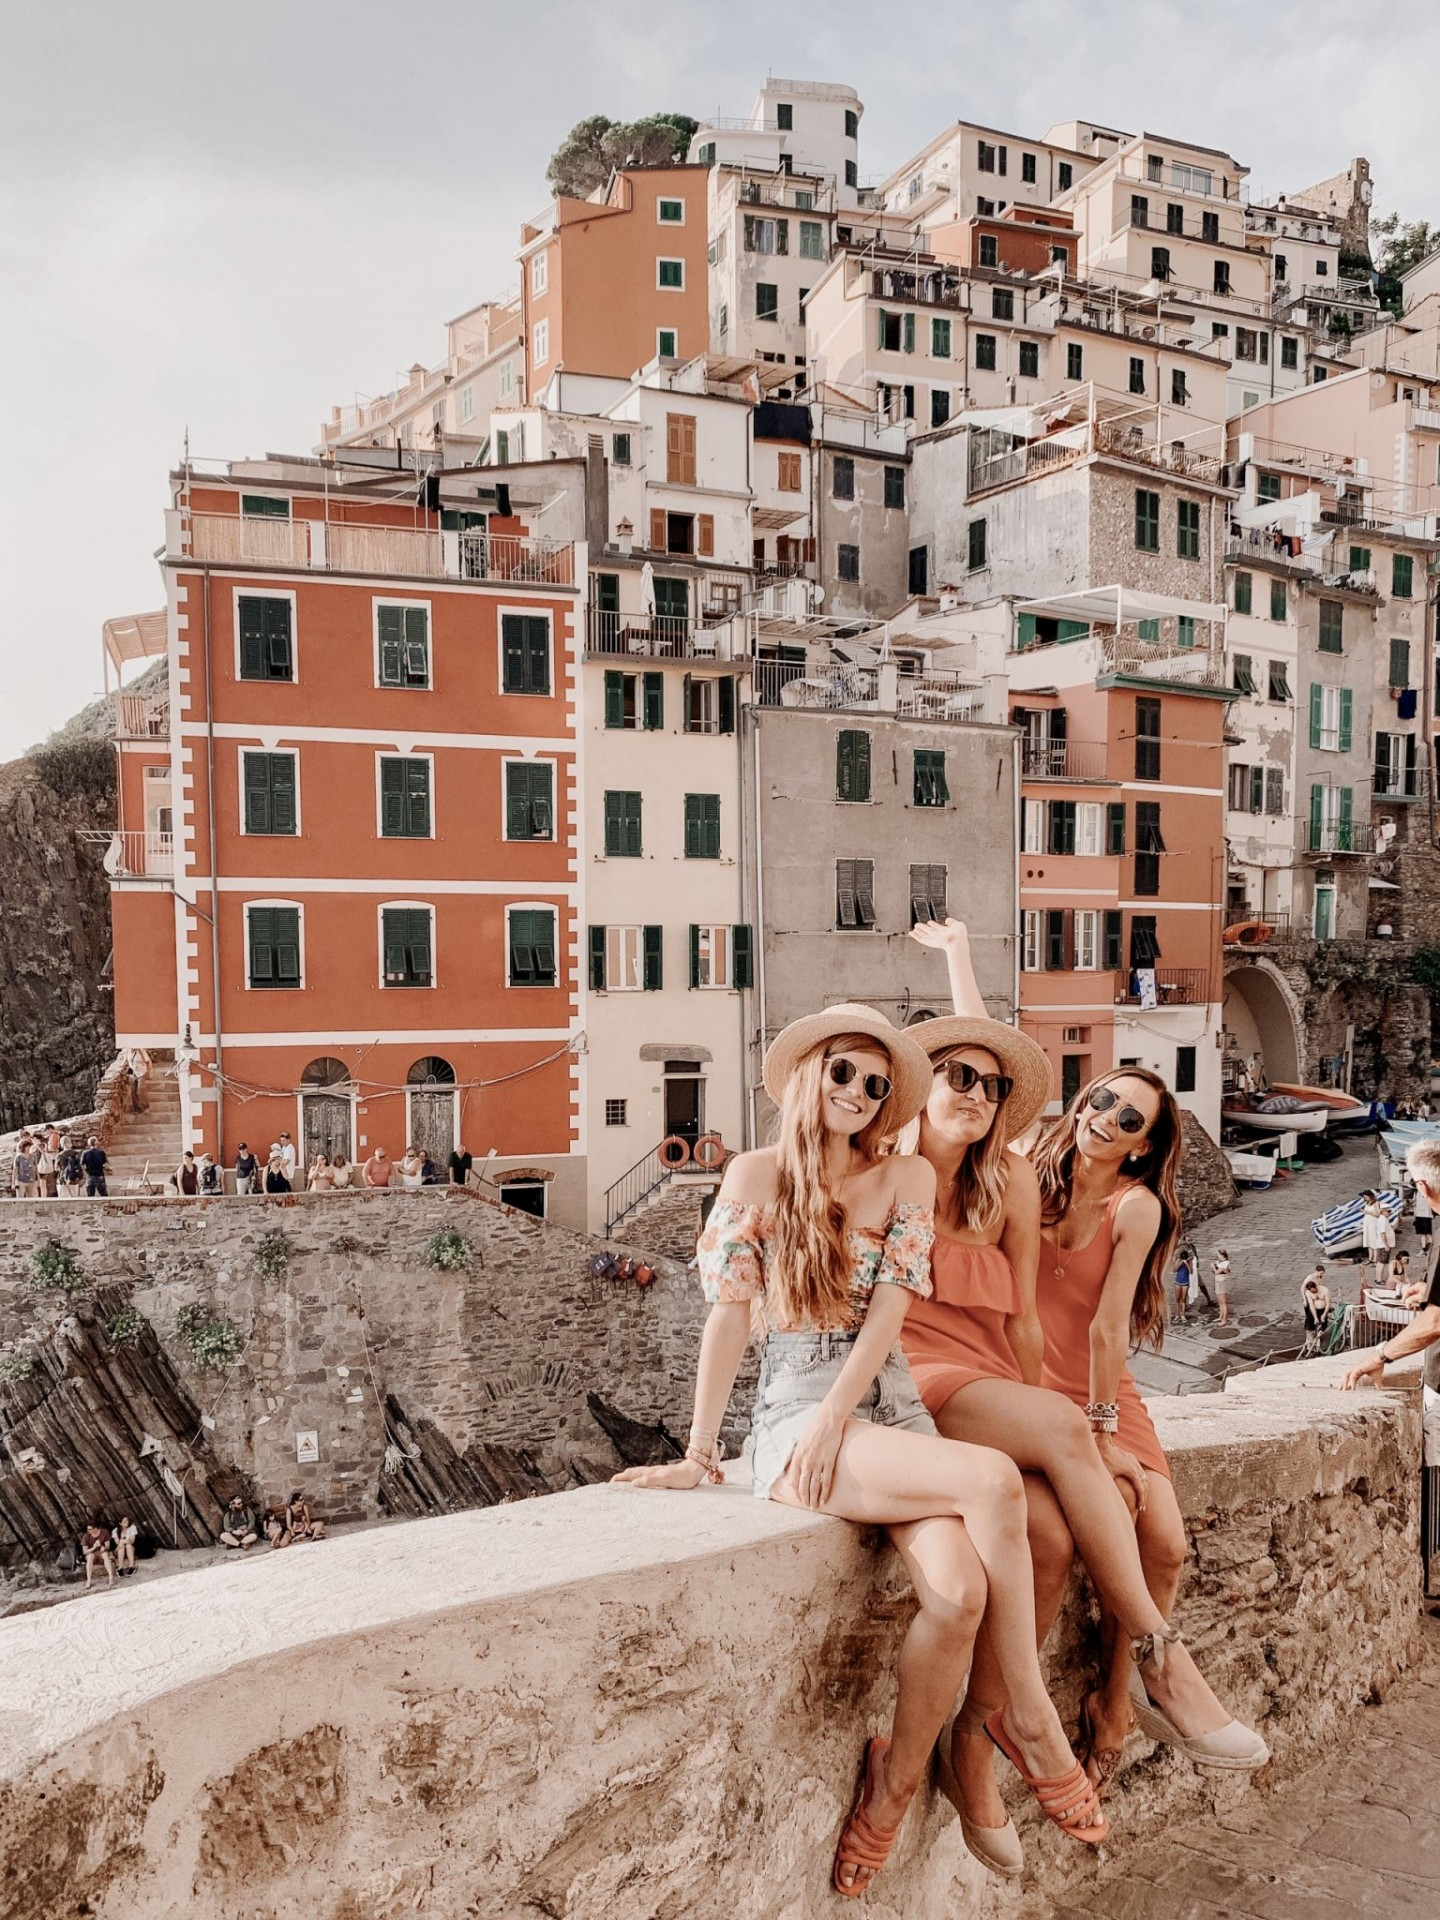 Lifestyle blogger Mollie Moore shares a Cinque Terre travel guide | Travel Guide: Things to do in Cinque Terre, Italy by popular London travel blogger, Mollie Moore: image of three women sitting together on stone wall with the city of Cinque Terre, Italy in the background.